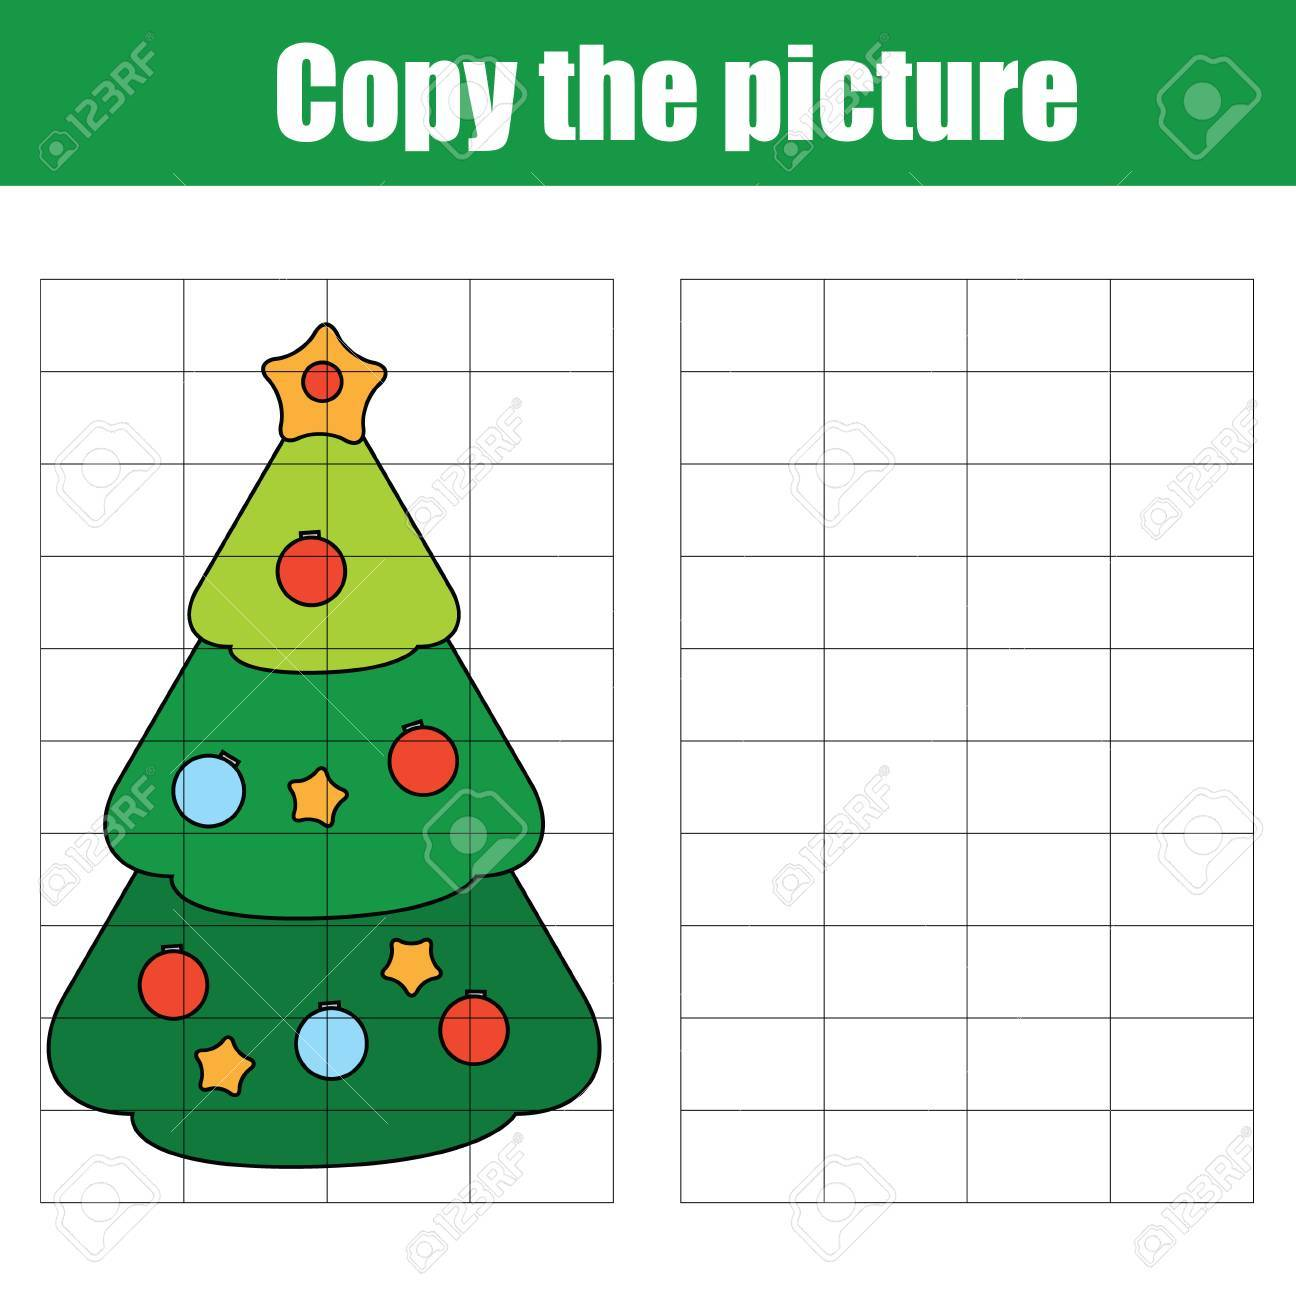 Copy The Picture Using A Grid Children Educational Drawing Game ...